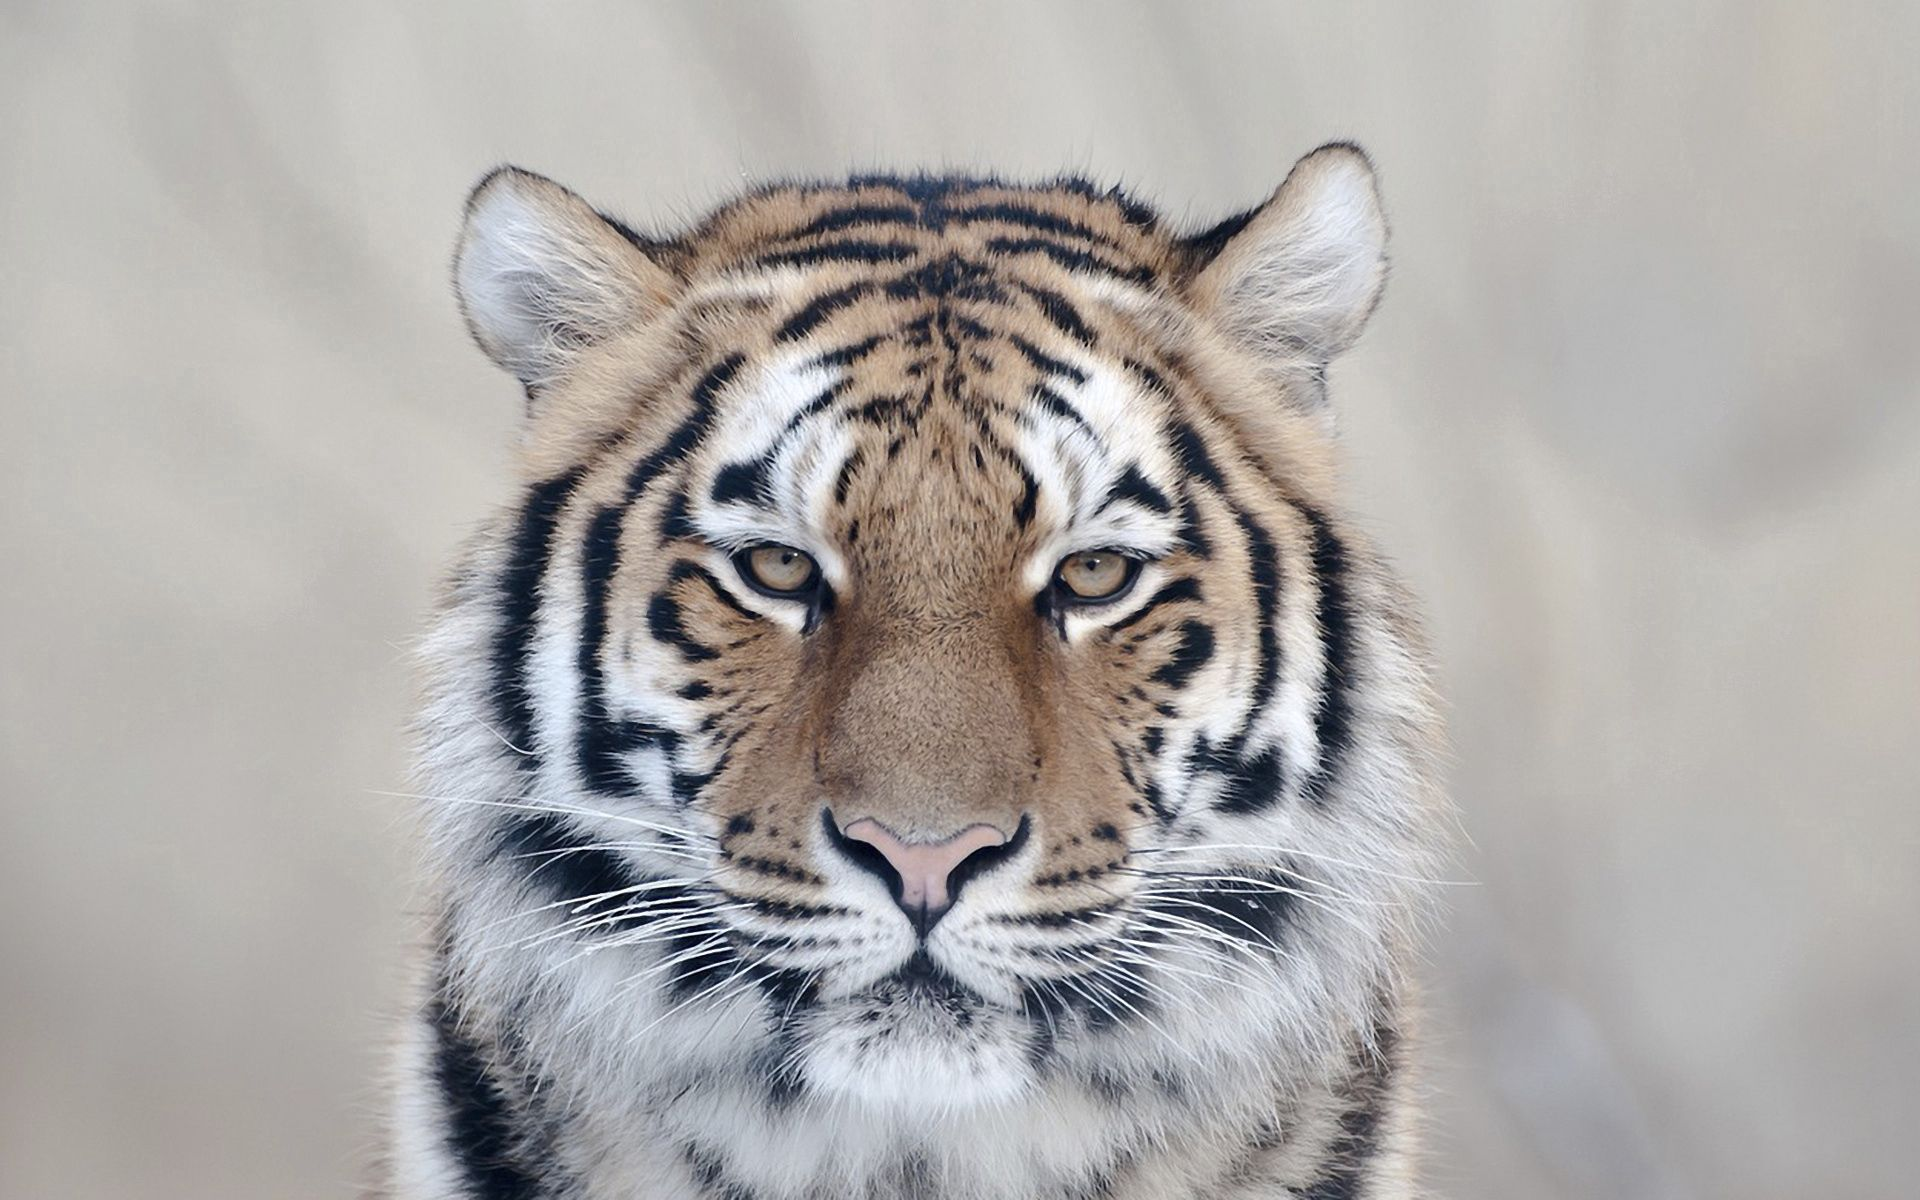 95459 download wallpaper Animals, Tiger, Muzzle, Big Cat, Predator screensavers and pictures for free